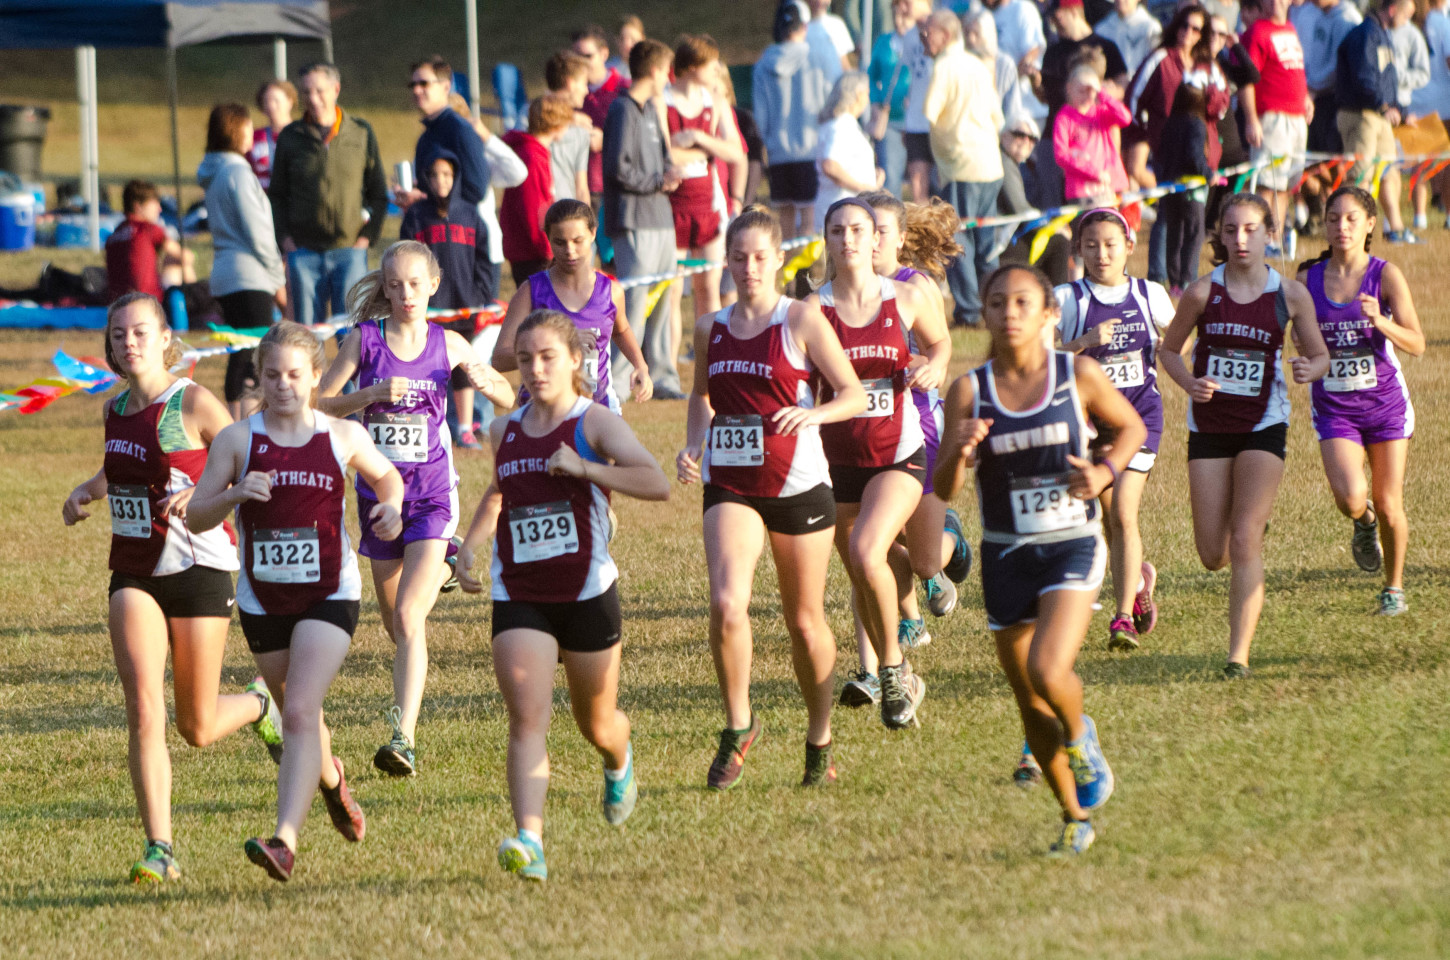 This year's Coweta Cup race will be held at Northgate, where host teams are attempting to repeat.